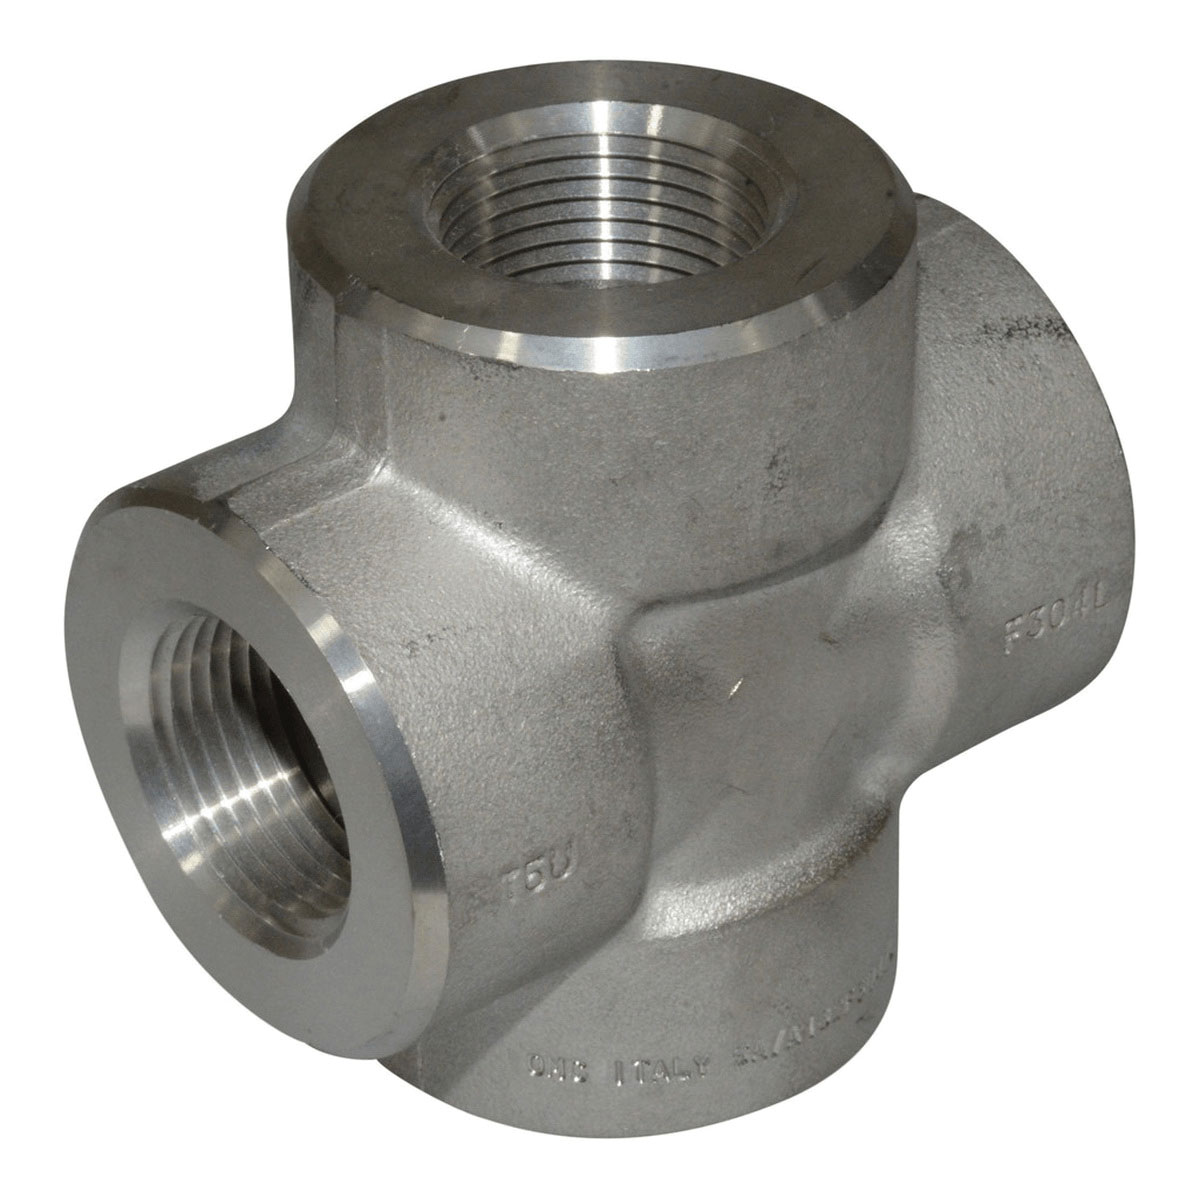 Steel Class 3000 Forged Cross, 1 in, Threaded, Import